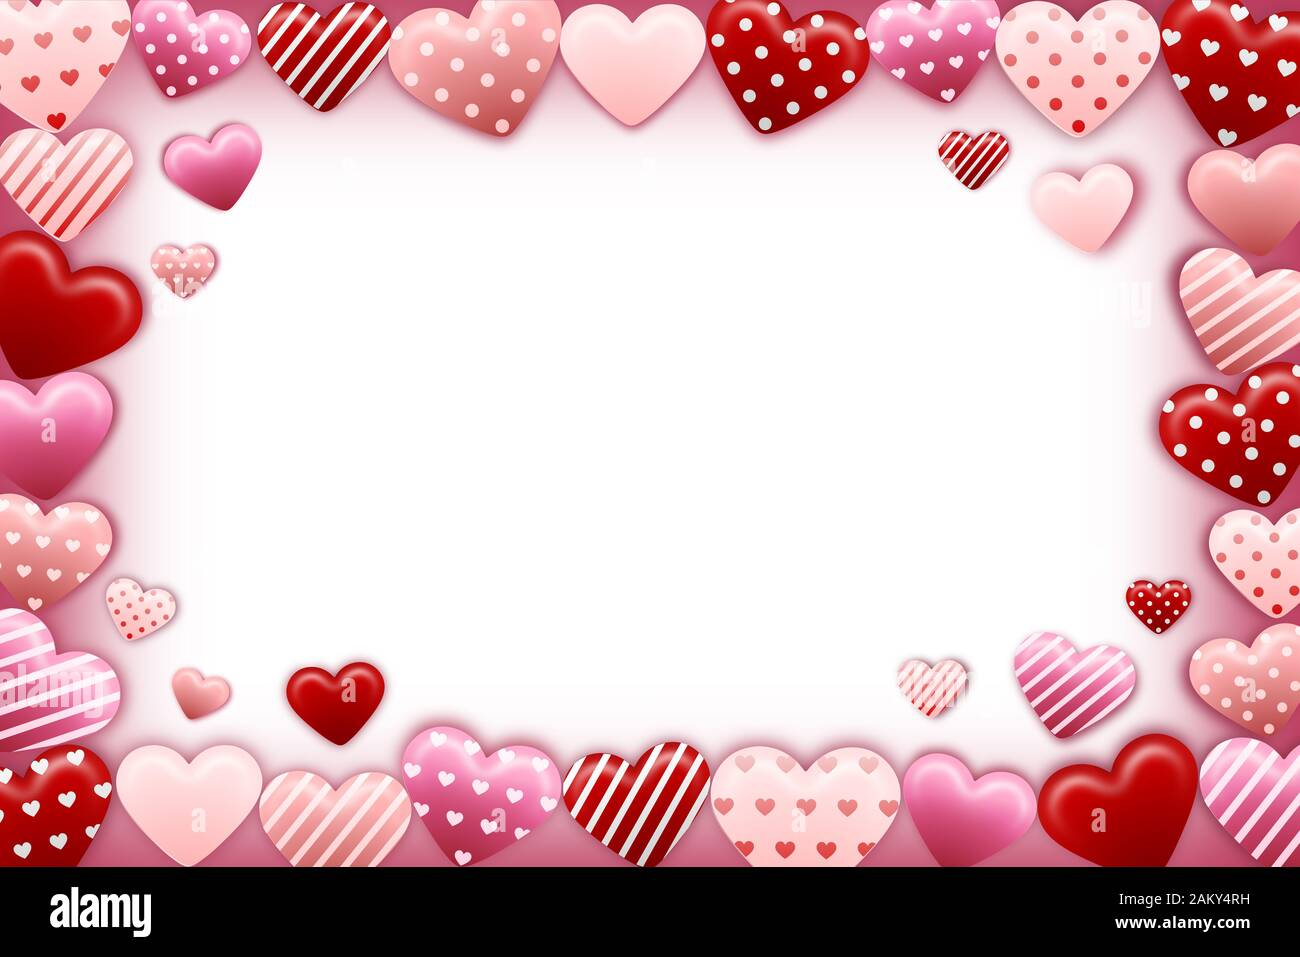 pink and red Valentine\u2019s Day hearts 4x6 picture frame